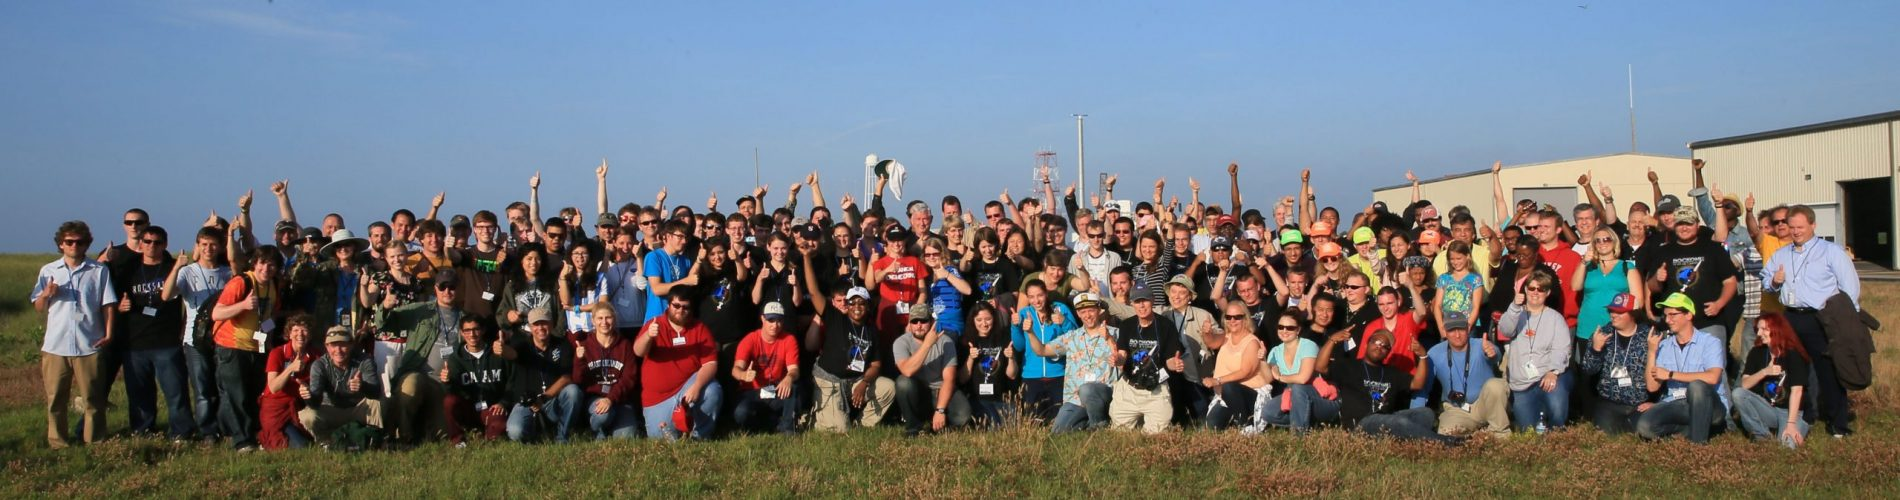 The students and teachers of RockOn signal the successful launch with a thumbs-up.